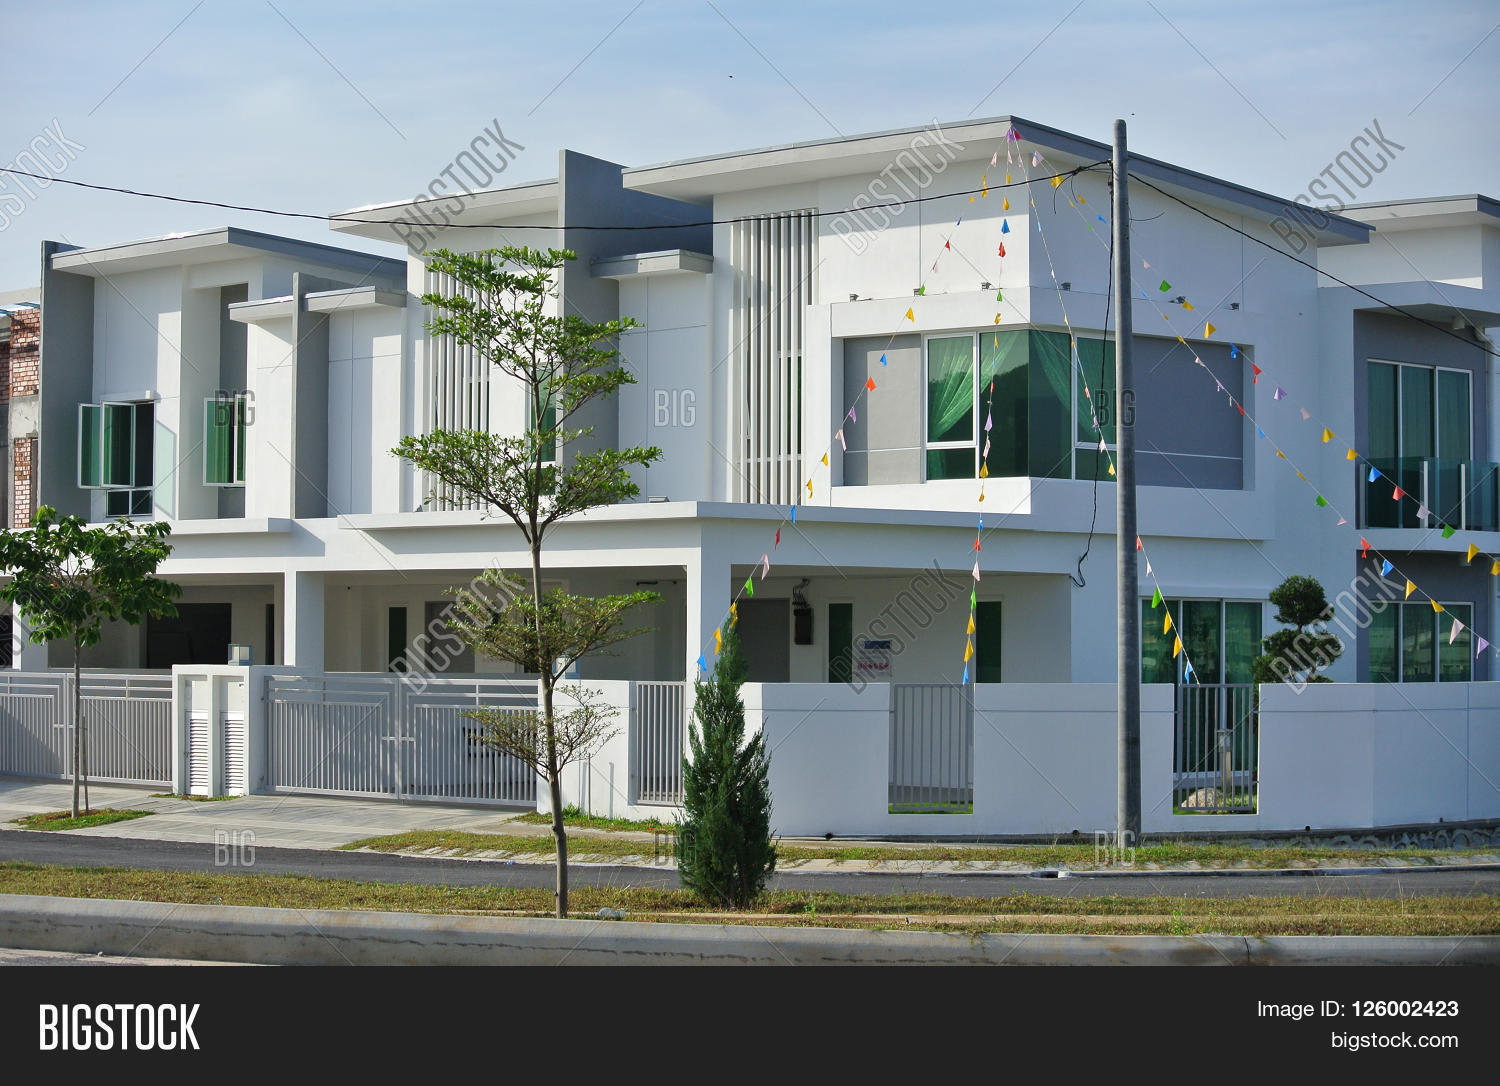 Terrace house design in malaysia House design ideas